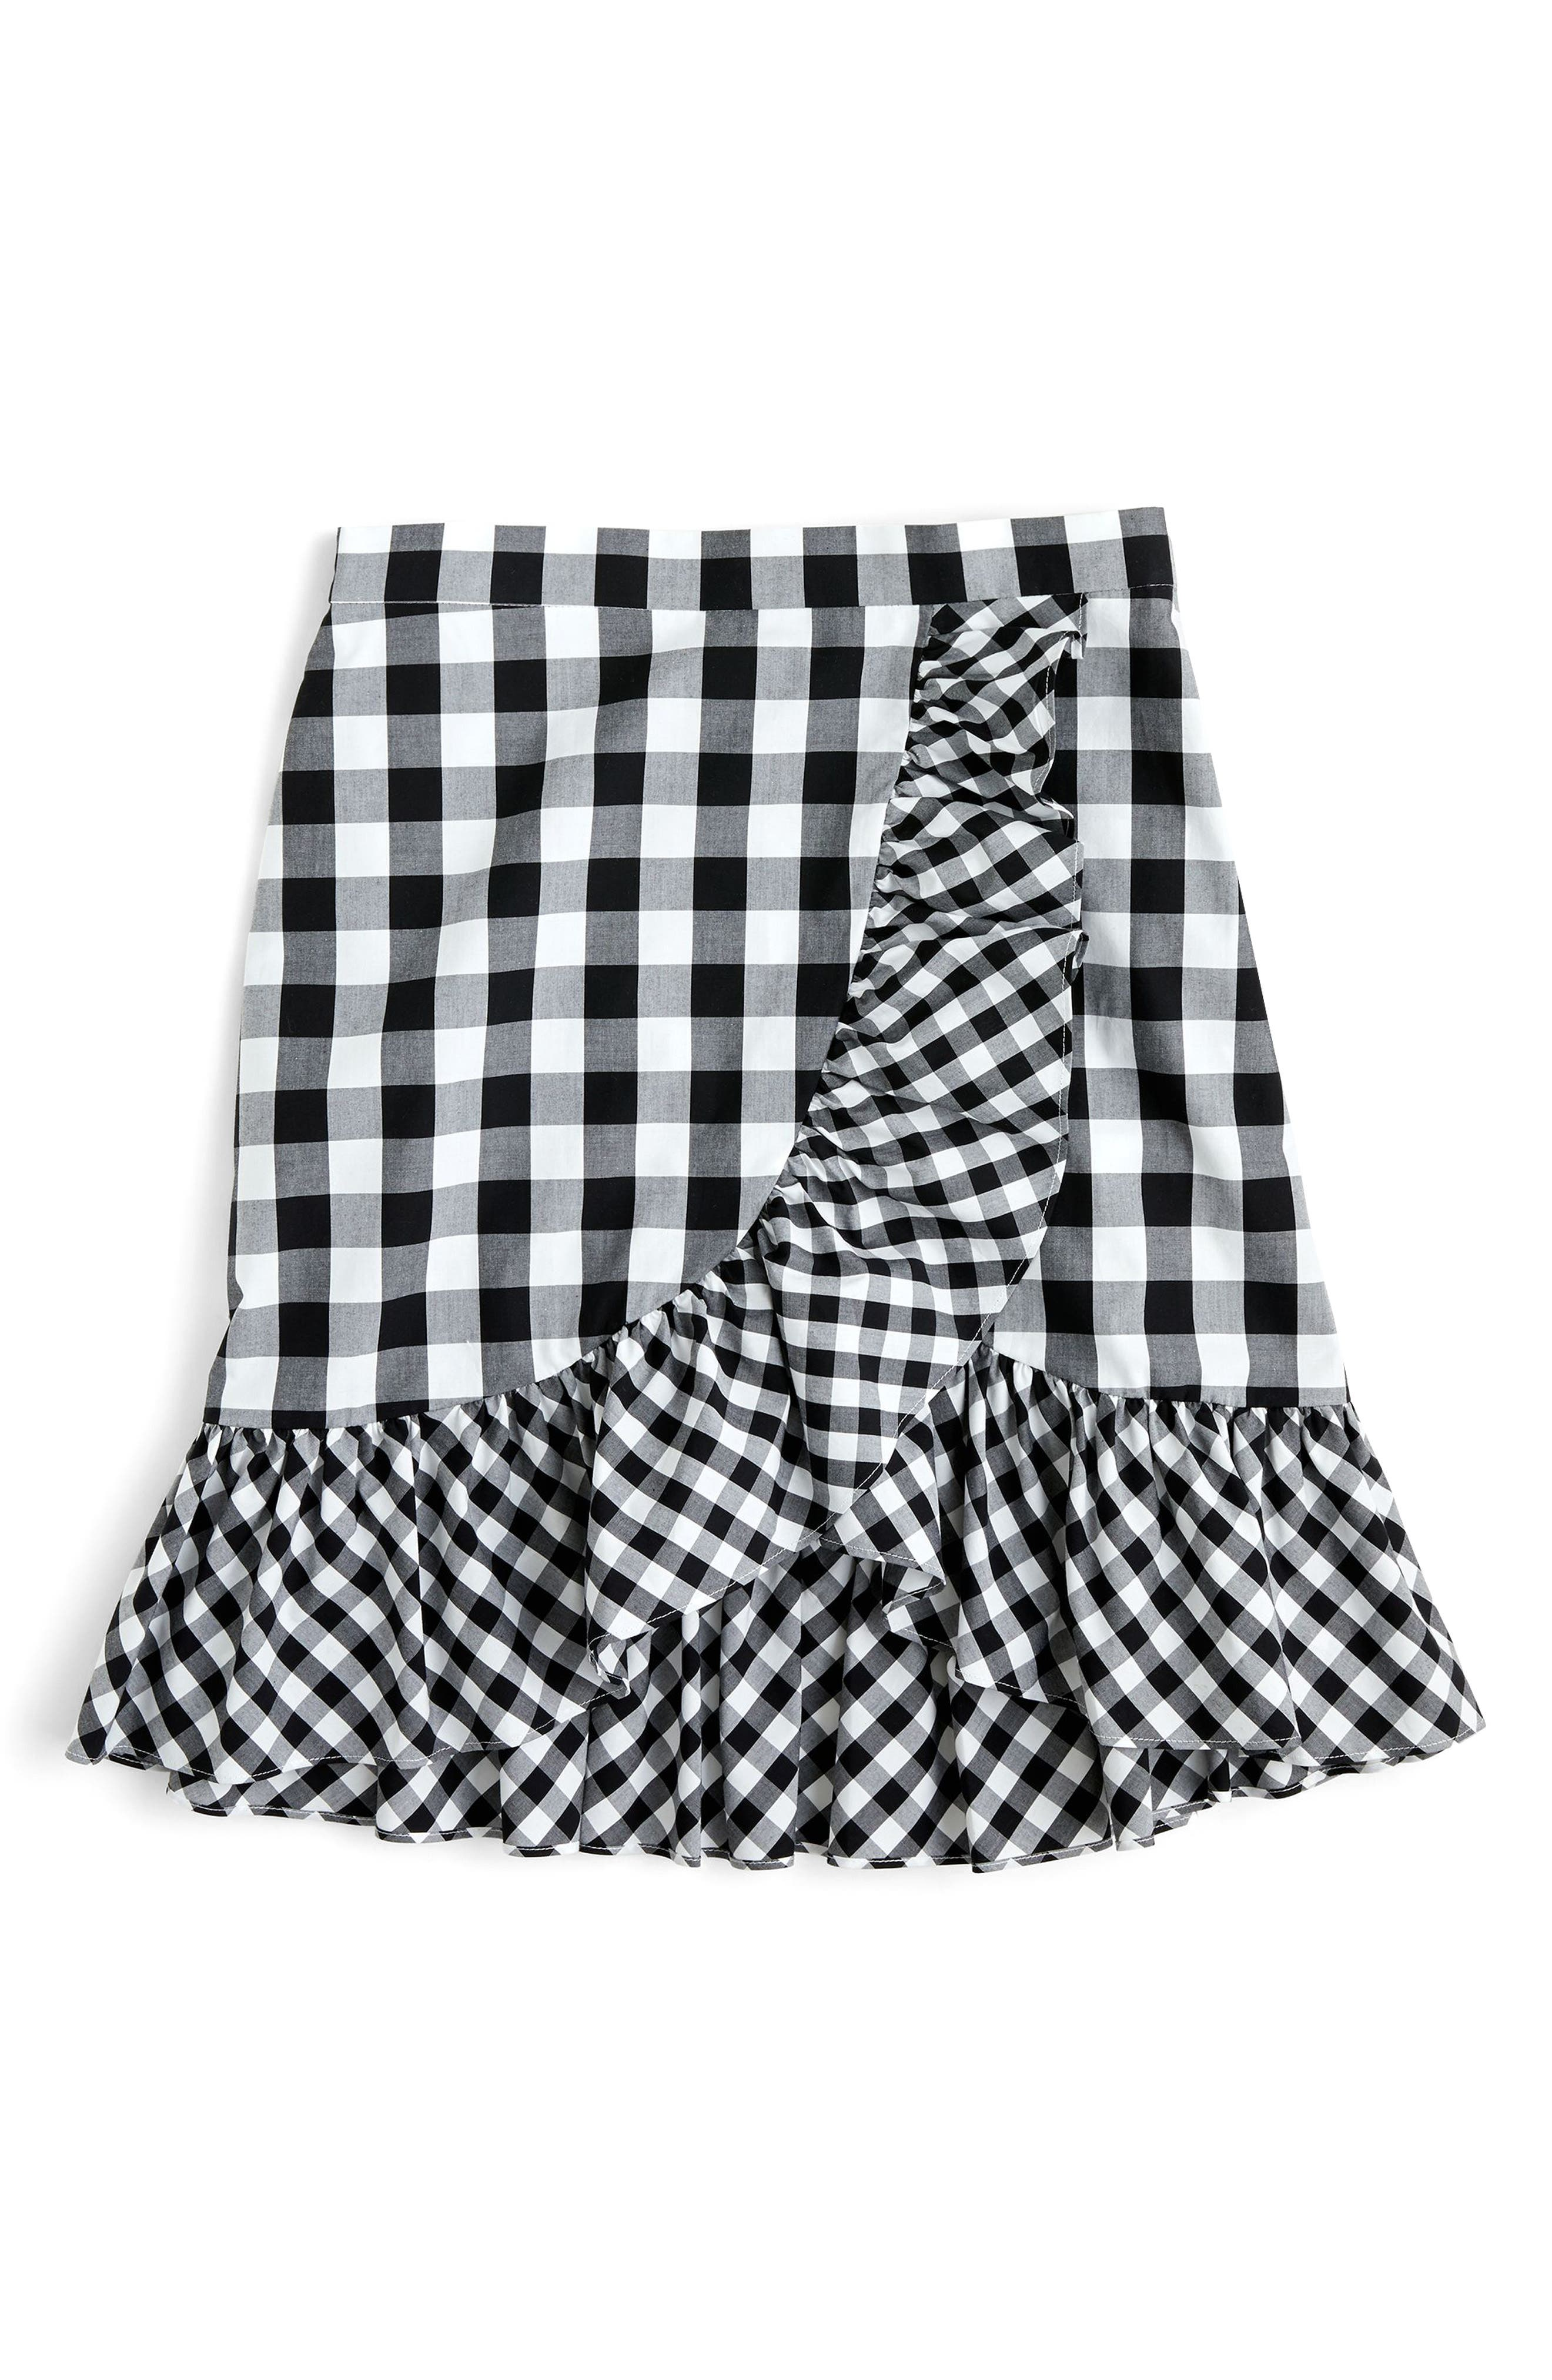 Pistachio Gingham Cotton Poplin Ruffle Skirt,                             Alternate thumbnail 4, color,                             Black